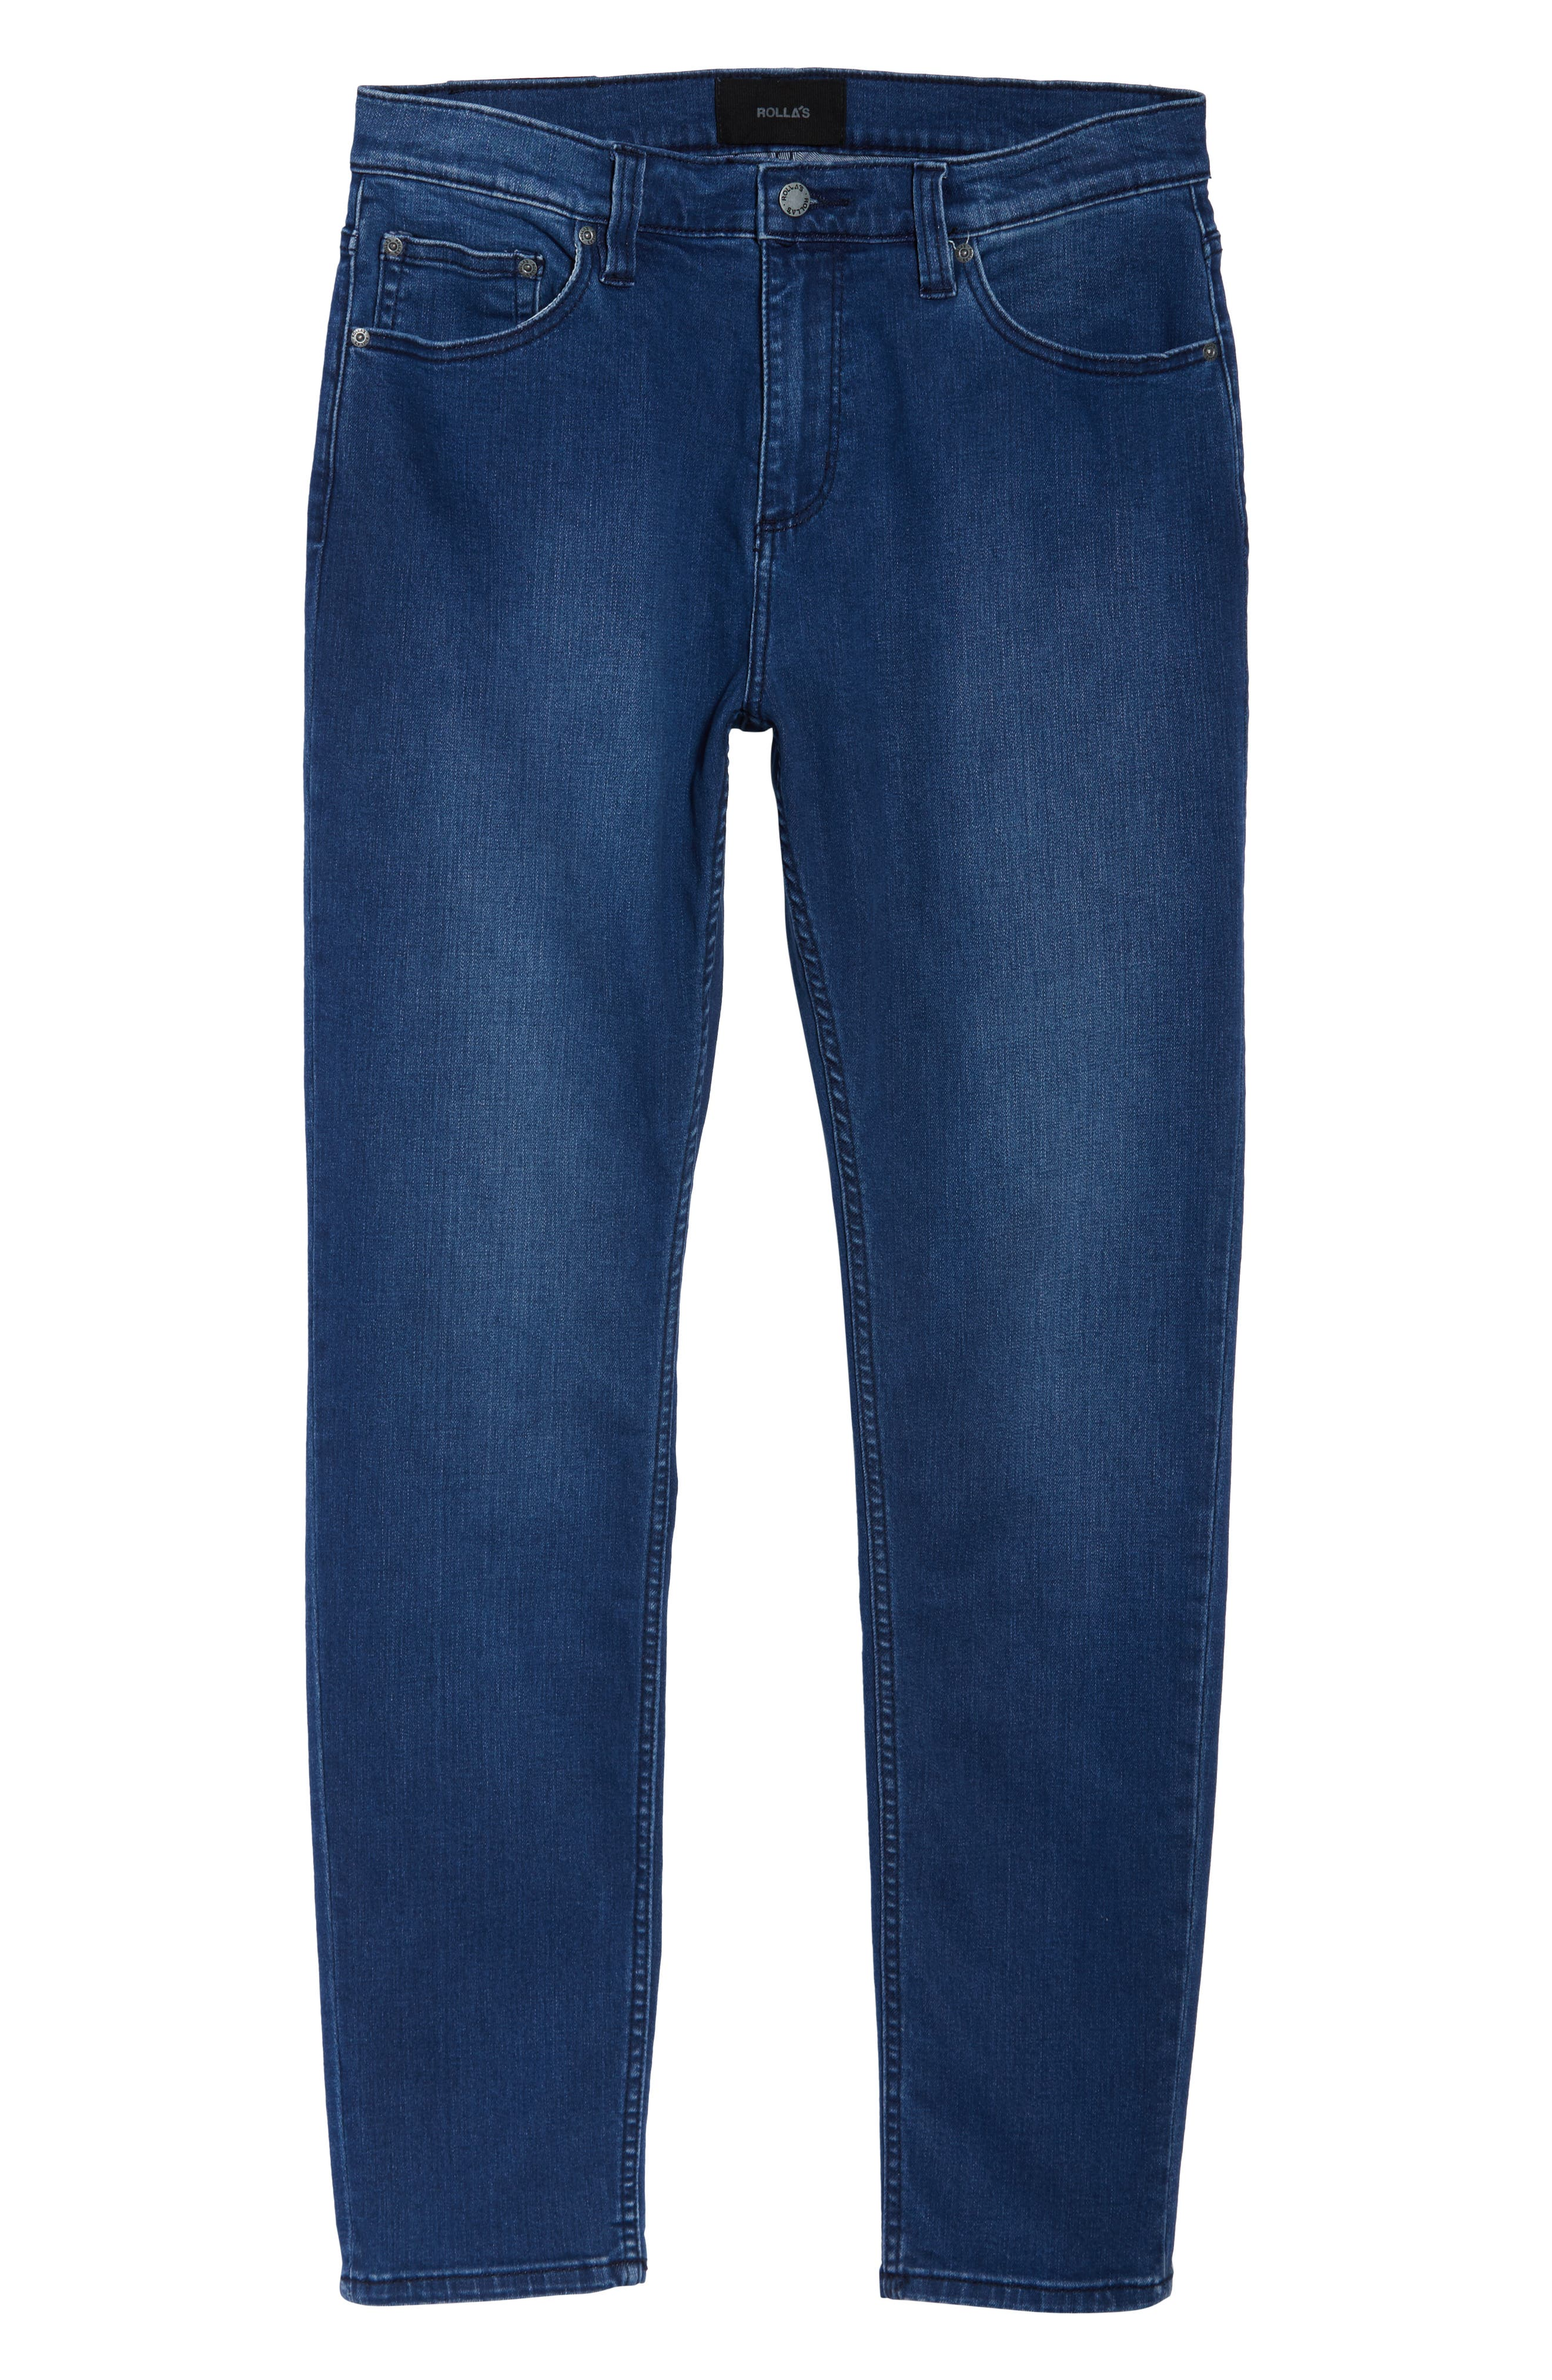 ROLLA'S,                             Tim Slims Slim Fit Jeans,                             Alternate thumbnail 4, color,                             FOSTERS BLUE